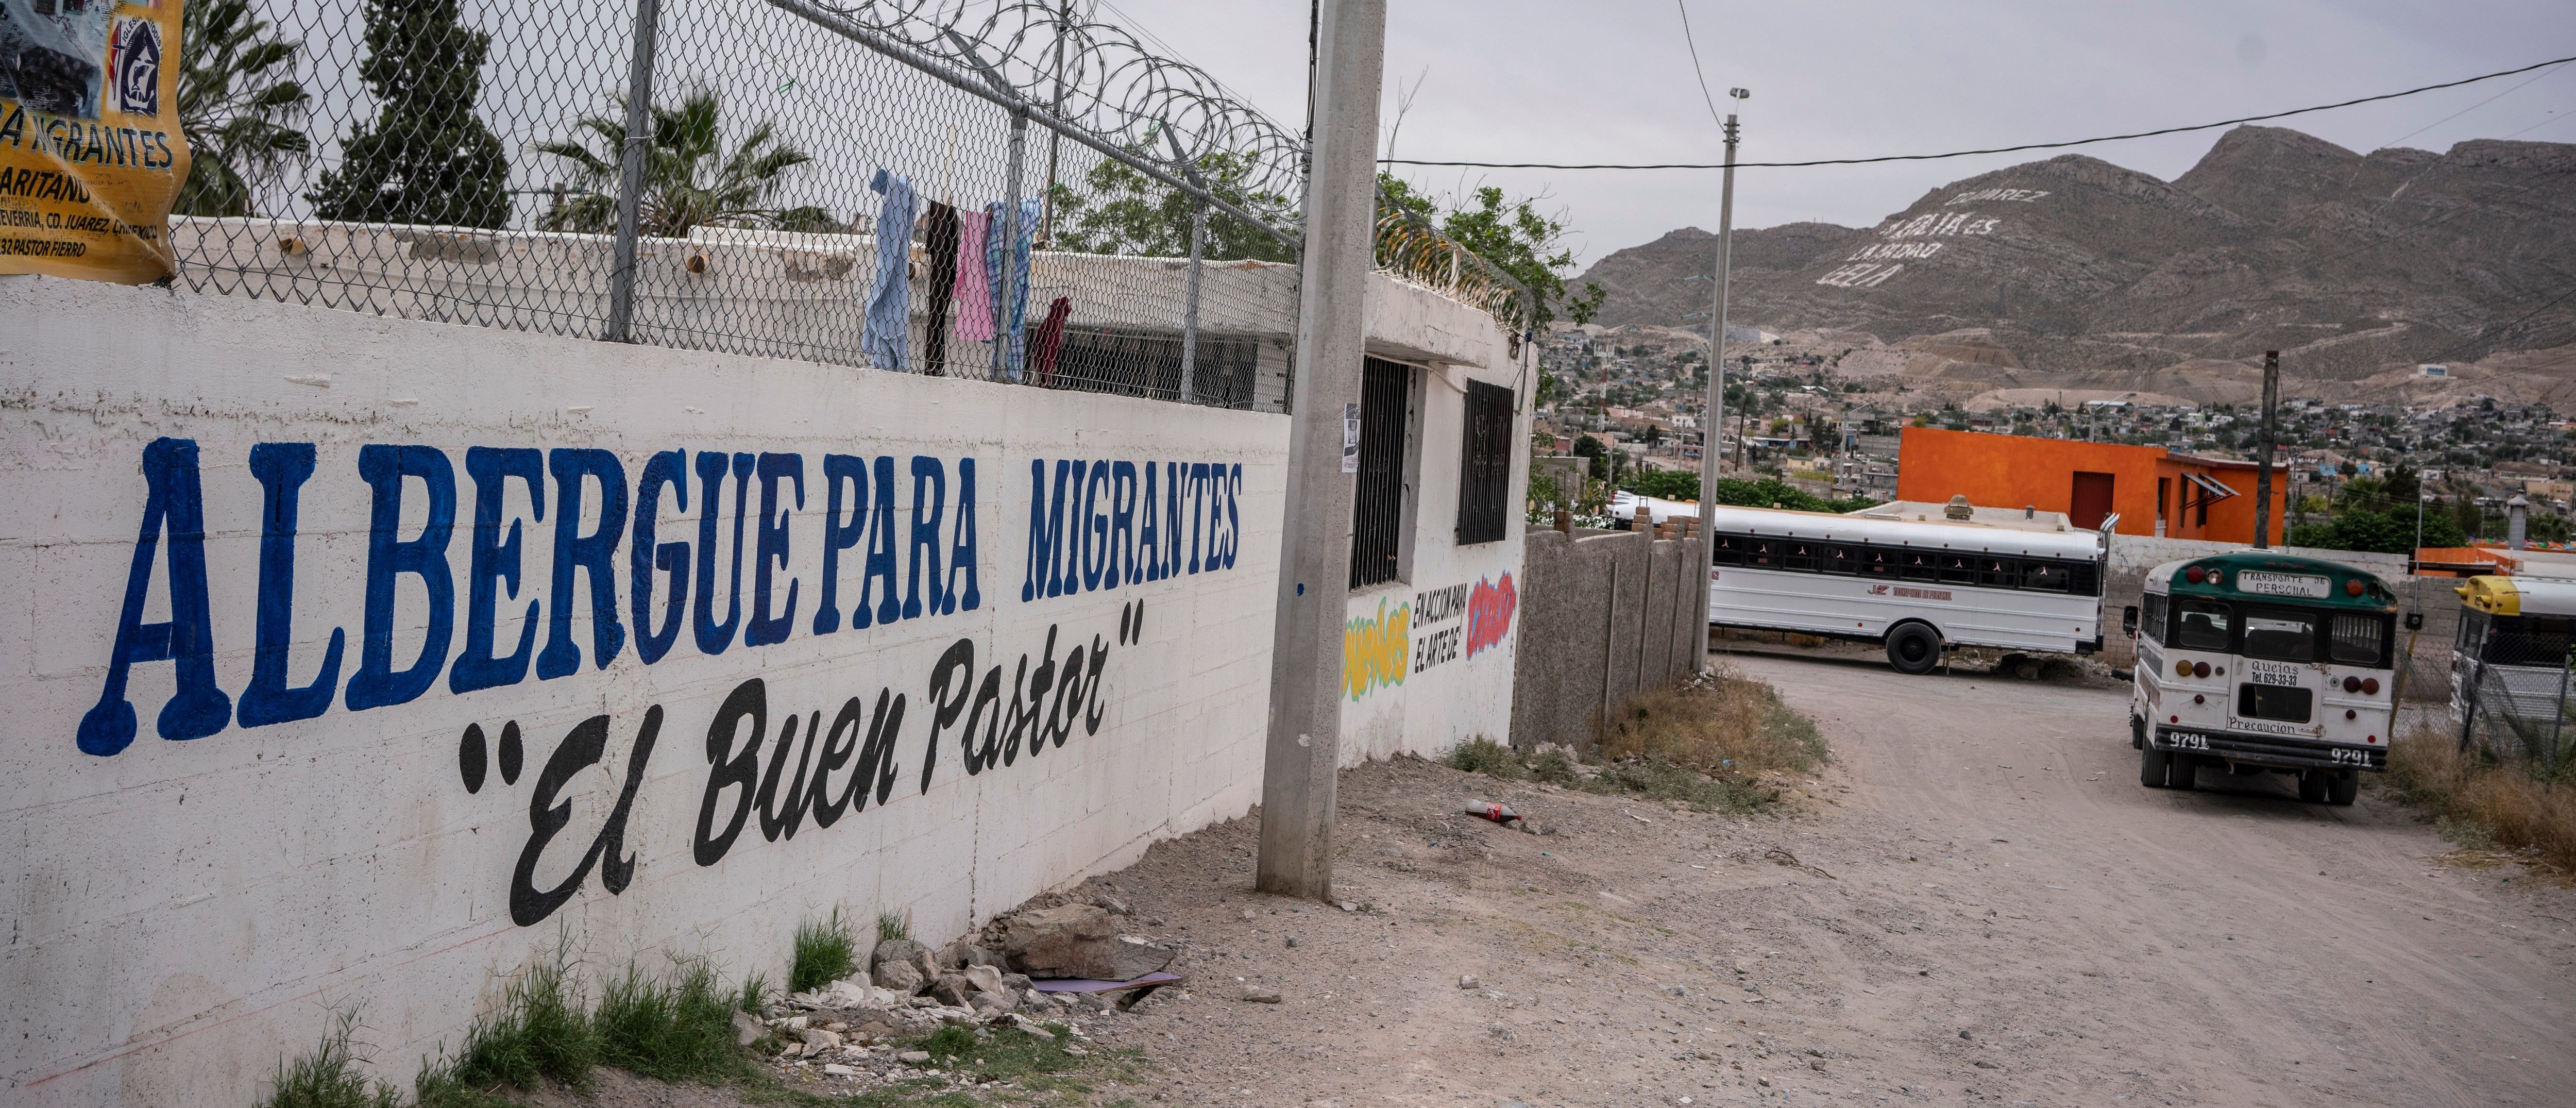 "The exterior of Iglesia Metodista ""El Buen Pastor"", a church run shelter for migrants, is pictured in Ciudad Juarez, Chihuahua State, on May 20, 2019. - About 7,000 migrants are waiting to enter the United States via El Paso, either by the metered number system, or those which are part of the remain in Mexico policy, Migrant Protection Protocols. Those that are part of MPP are made to wait out their asylum claims on the Mexican side of the Border, where they are vulnerable to criminals looking for an easy target, extortionists, corrupt police, among other dangers. (Photo by Paul Ratje / AFP) (Photo credit should read PAUL RATJE/AFP/Getty Images)"